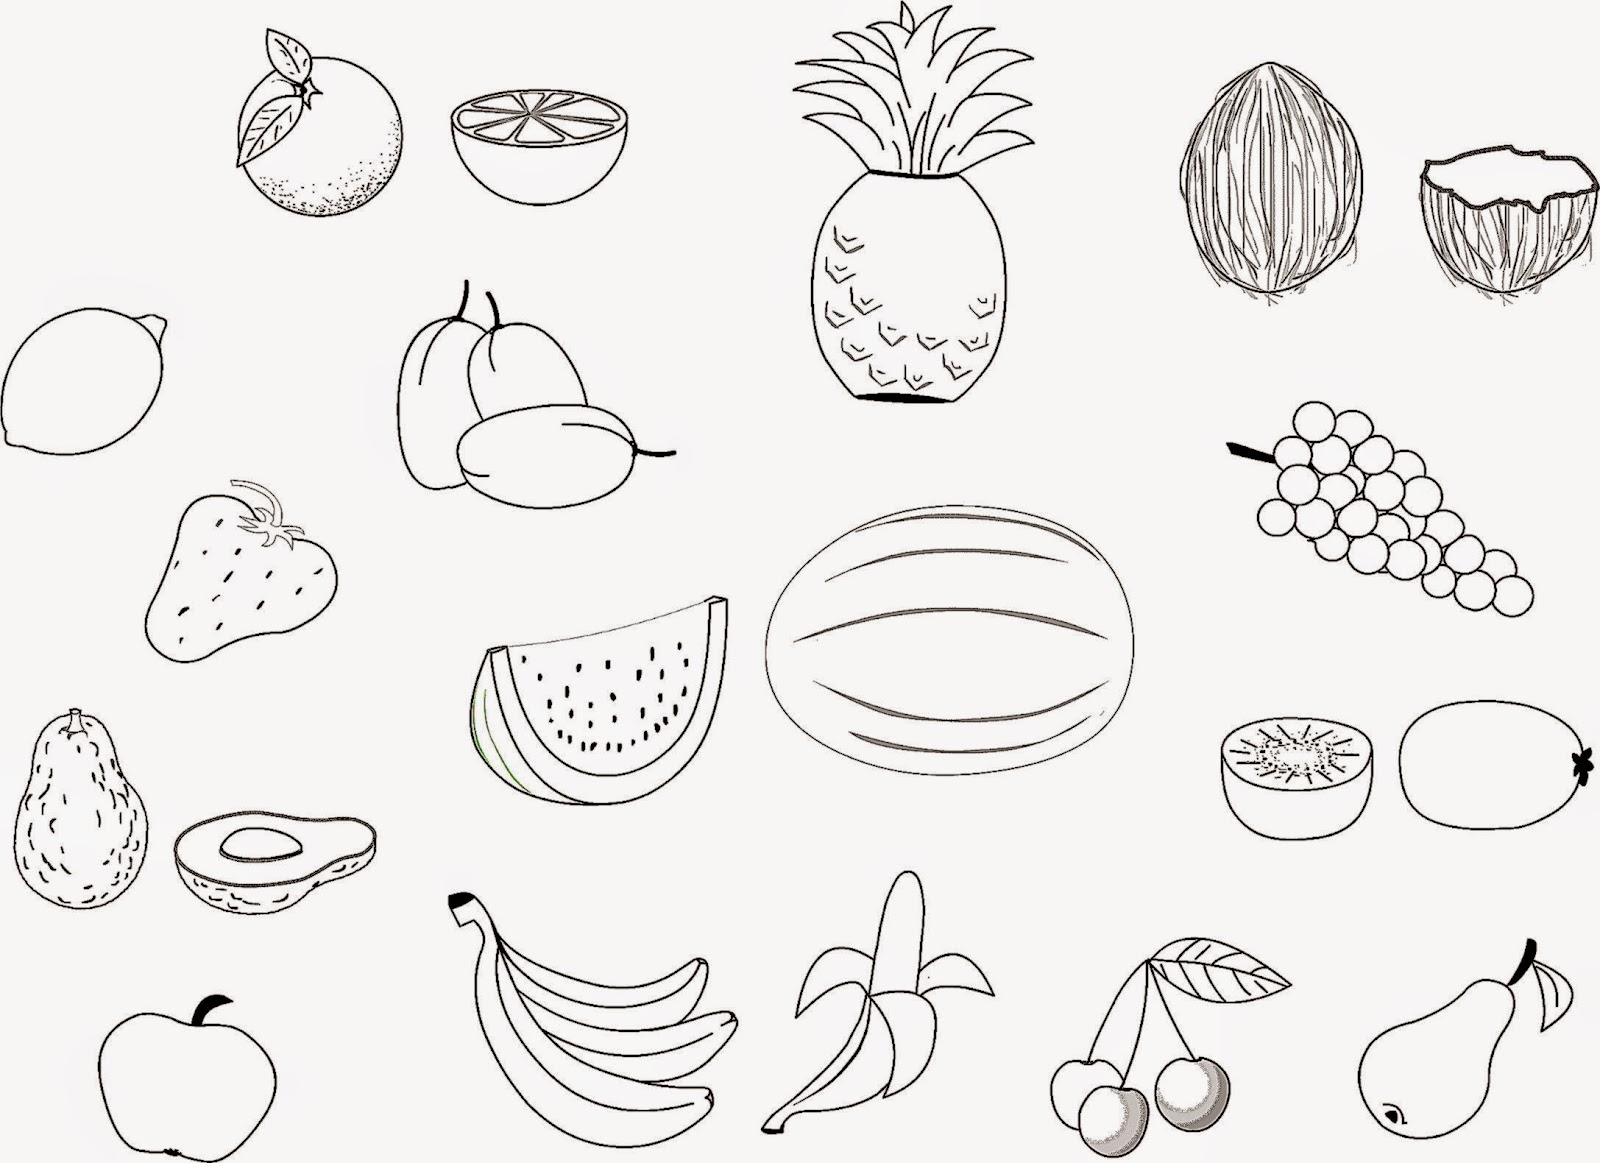 coloring pages fruits - coloring pictures of fruit free coloring pictures